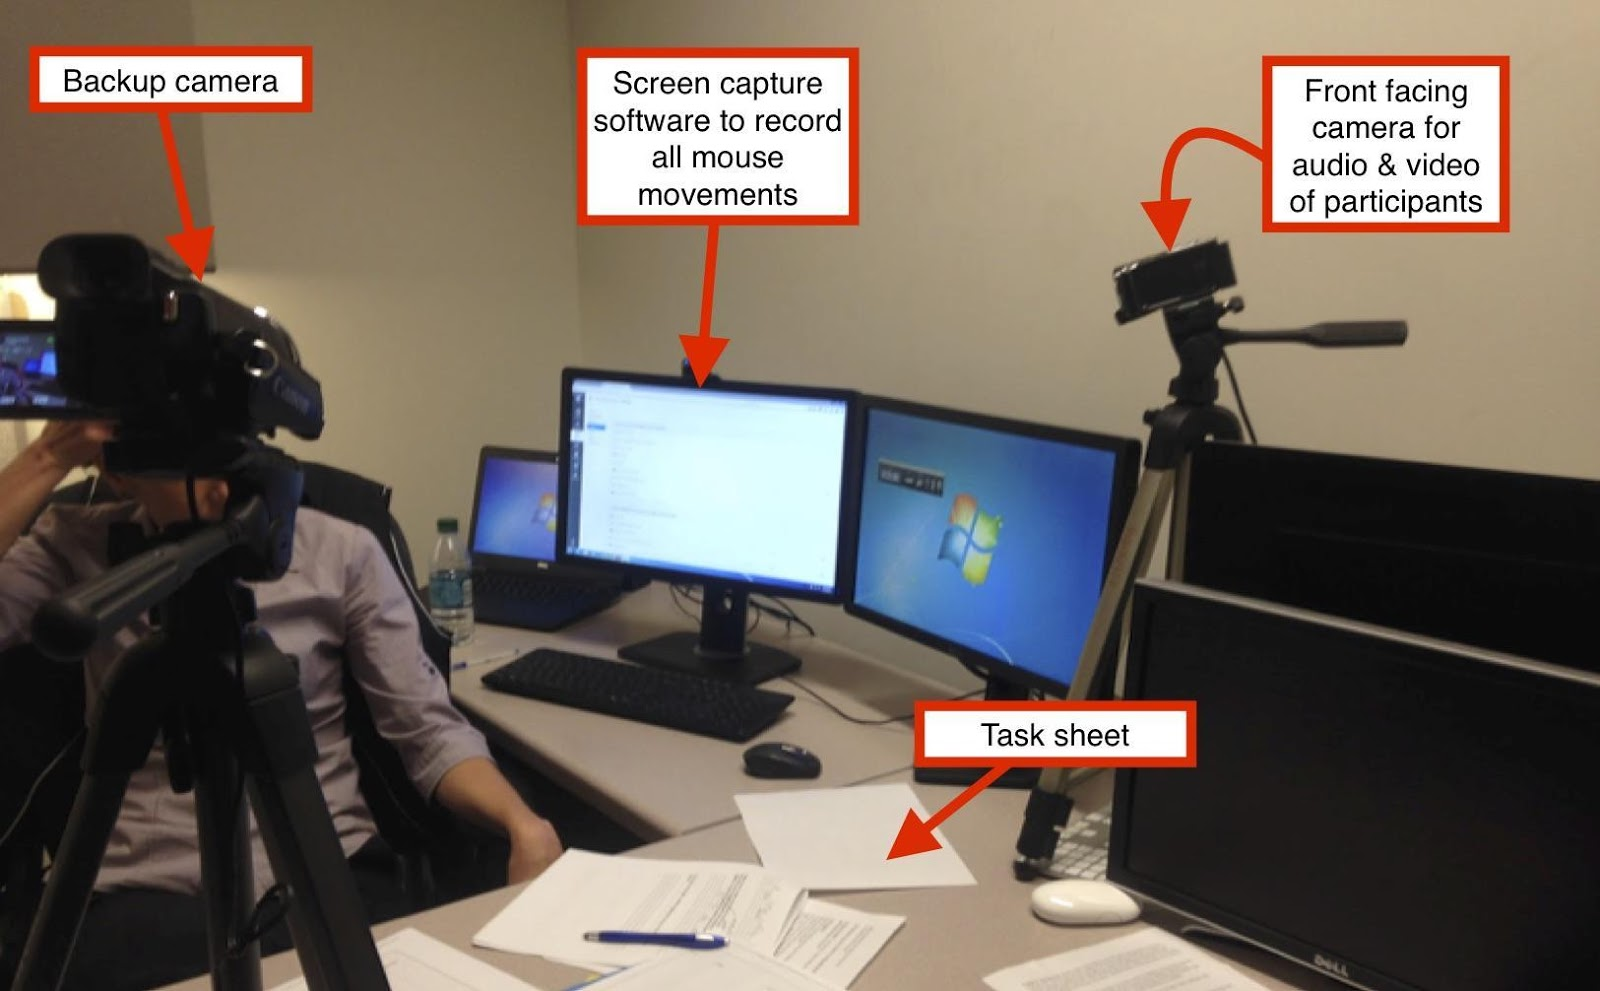 Room with computer monitors, paper, and cameras for user testing